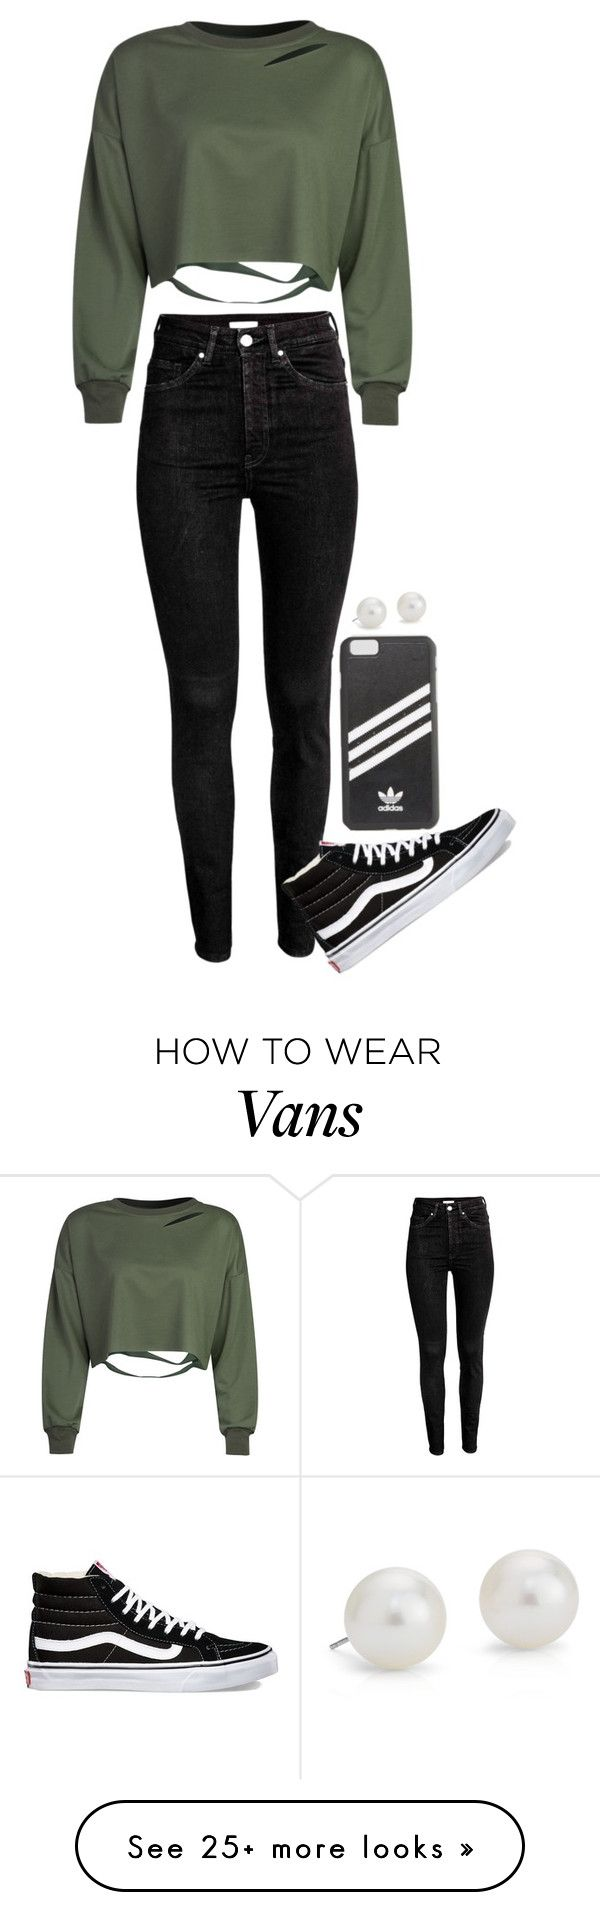 1000+ ideas about Adidas Outfit on Pinterest | Adidas fashion Adidas and Adiddas shoes